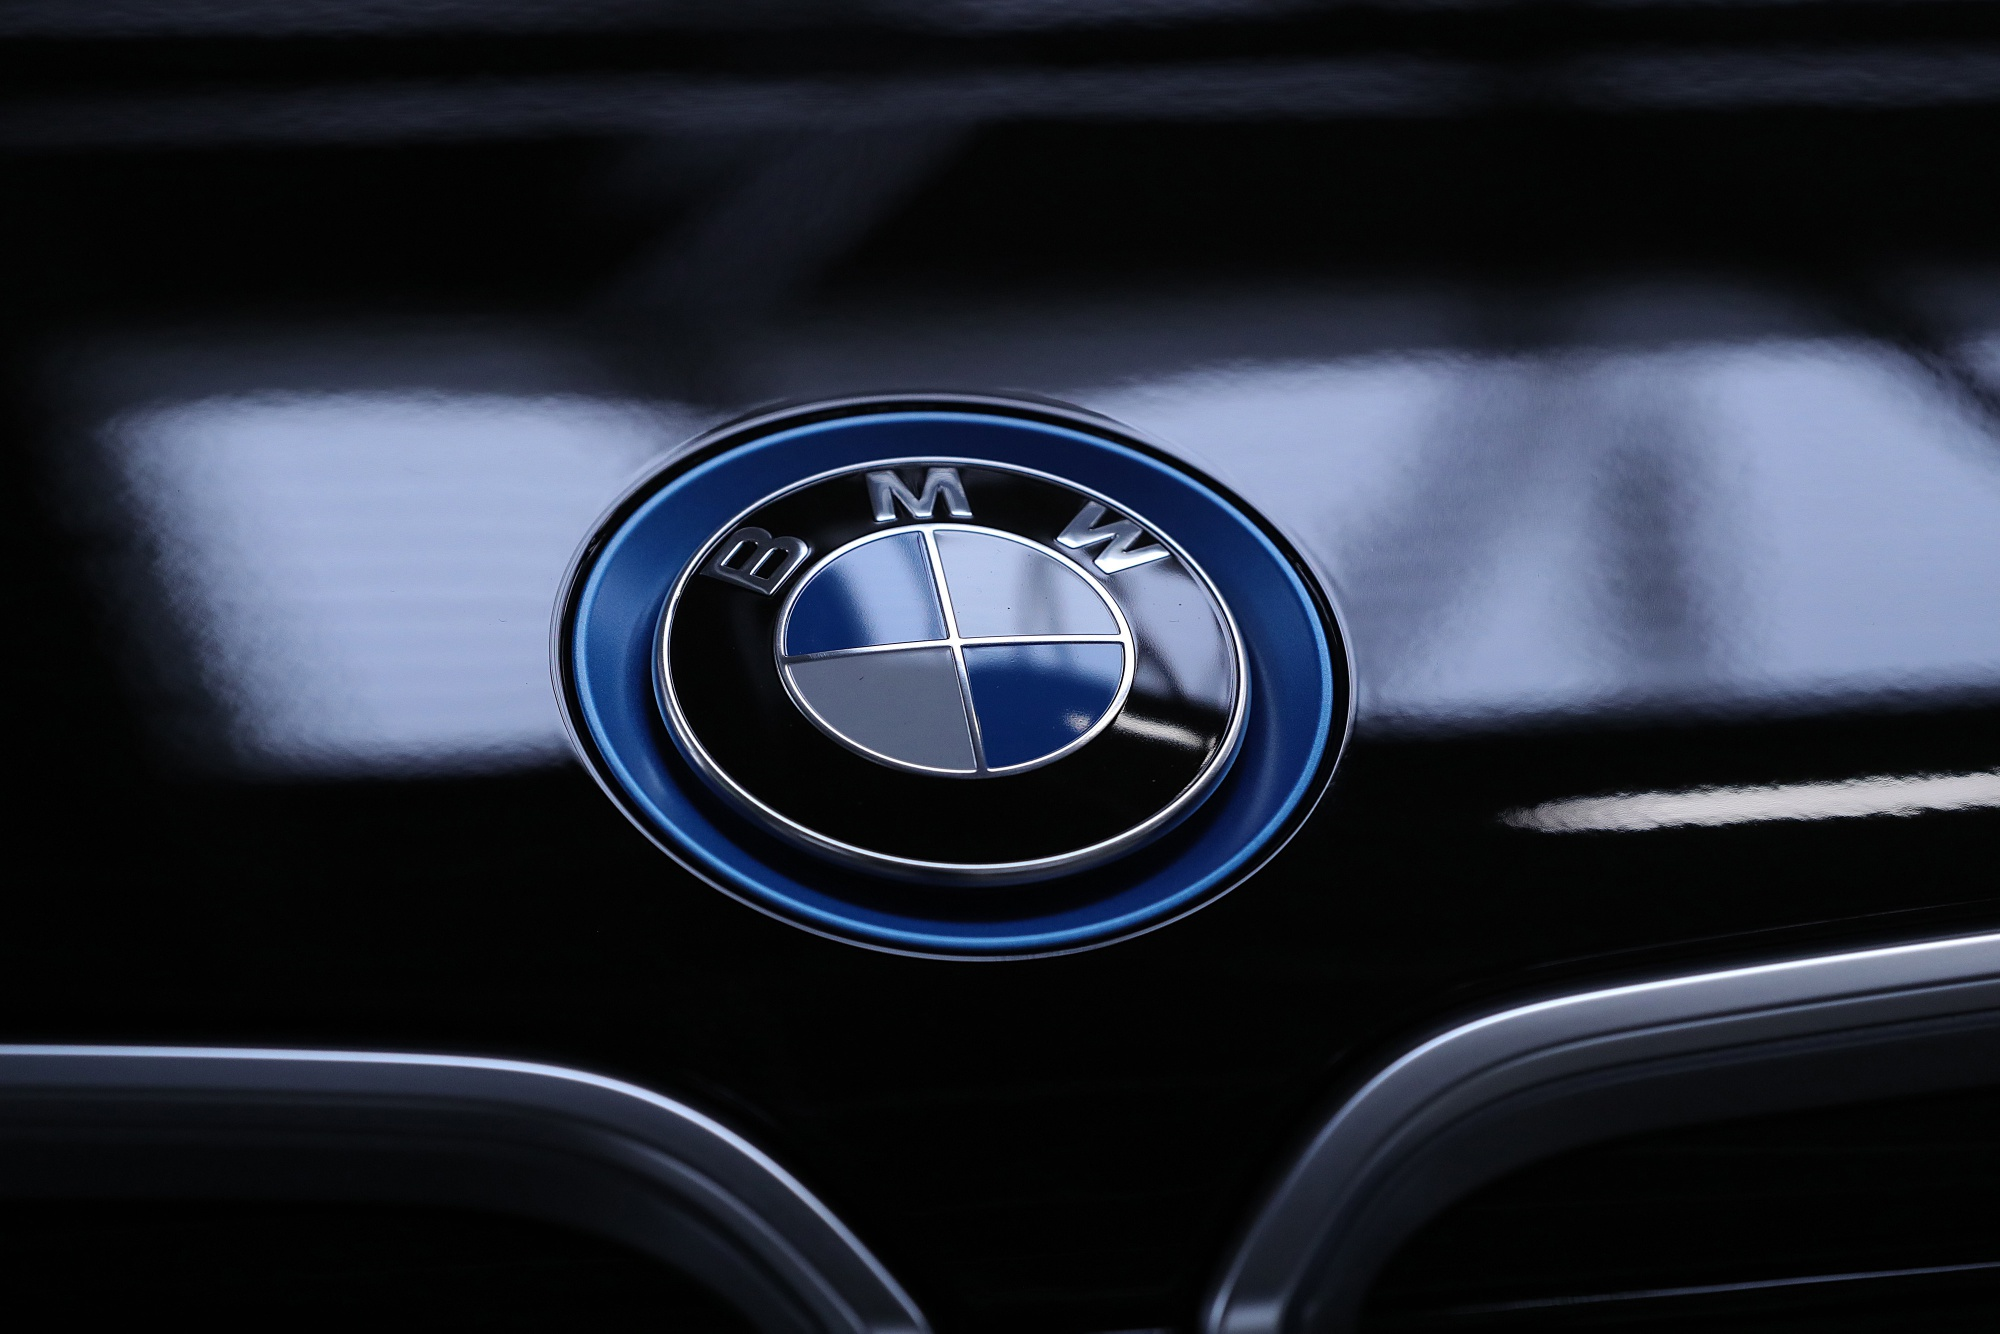 bloomberg.com - Oliver Sachgau - BMW Is Weeding Out Its Lineup to Prepare for the Electric Future